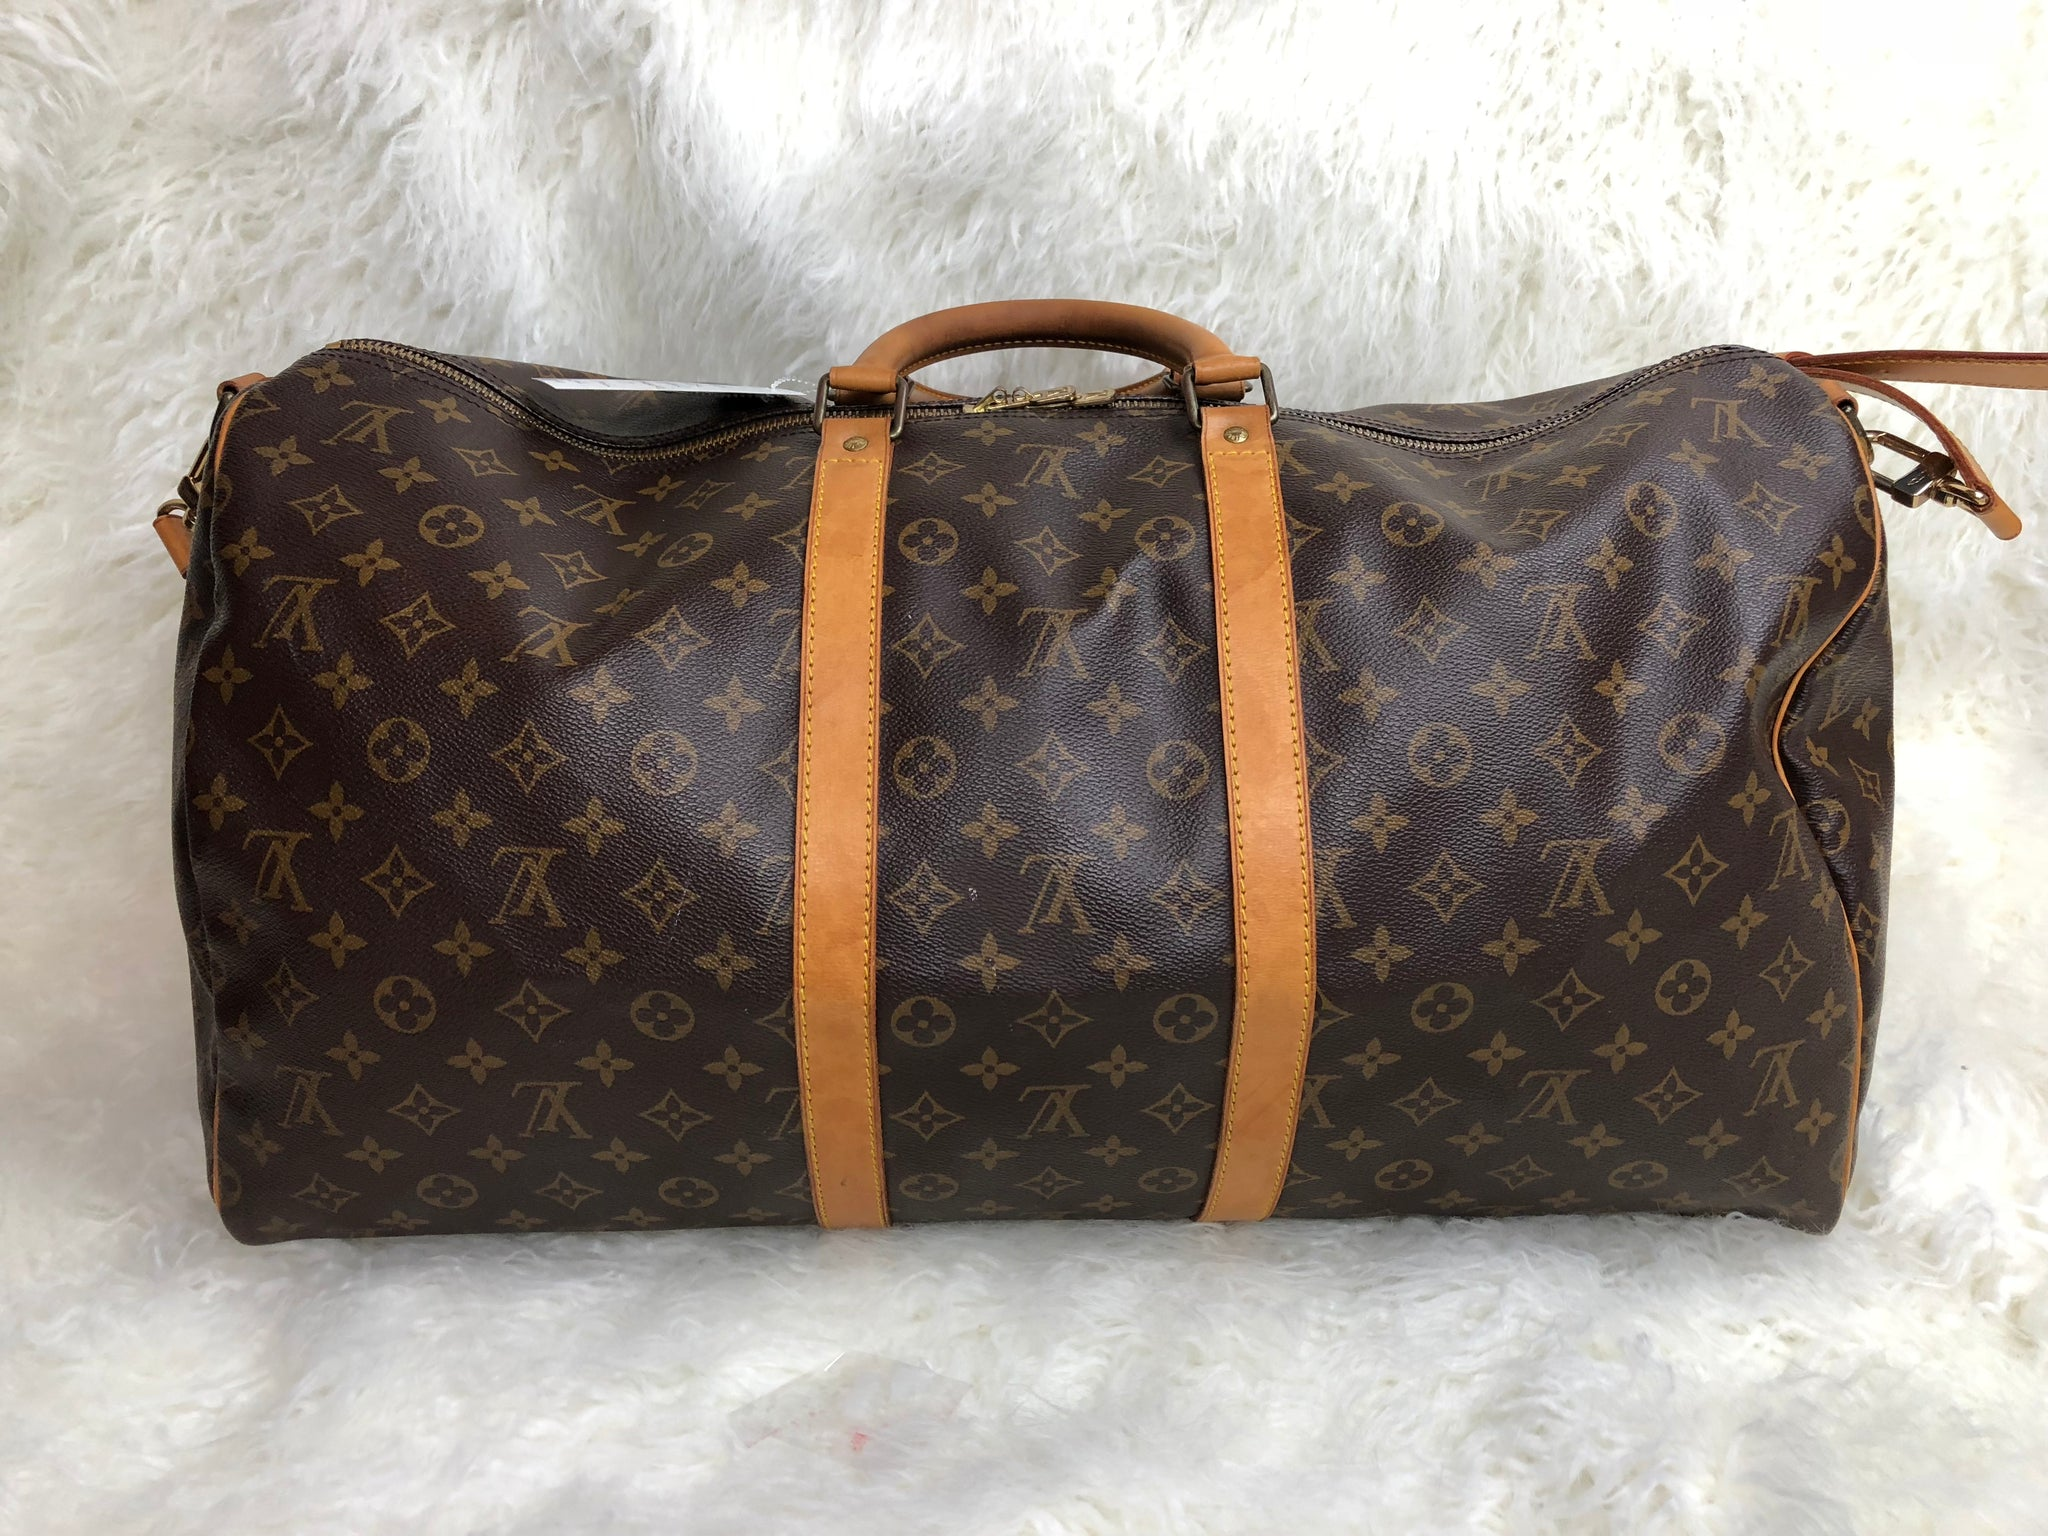 LOUIS VUITTON Keepall 55 Bandouliere Duffel Bag